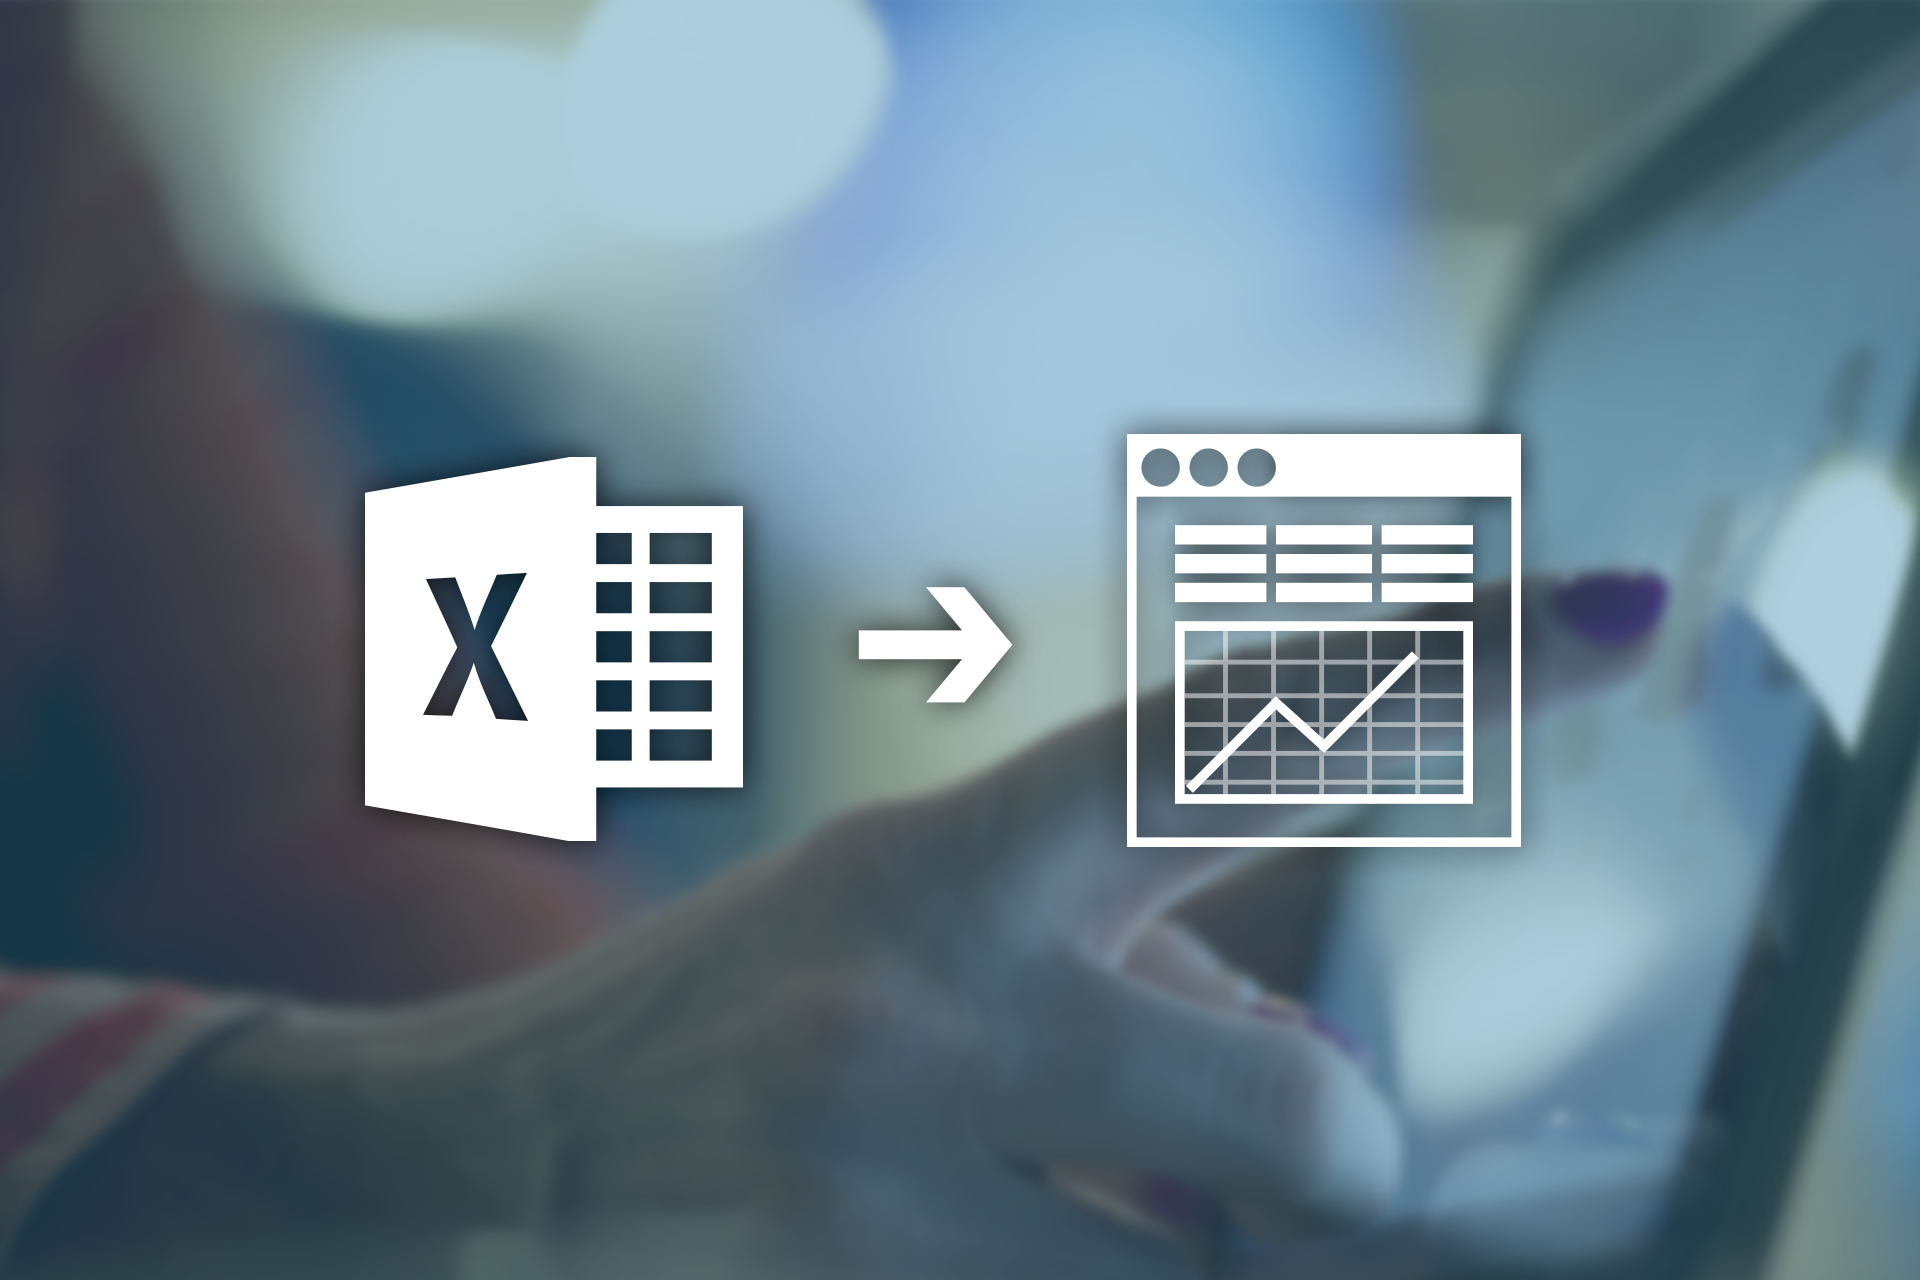 Json To Spreadsheet Converter For Convert Excel Spreadsheets Into Web Database Applications  Caspio Json To Spreadsheet Converter Google Spreadshee Google Spreadshee google spreadsheet to json converter